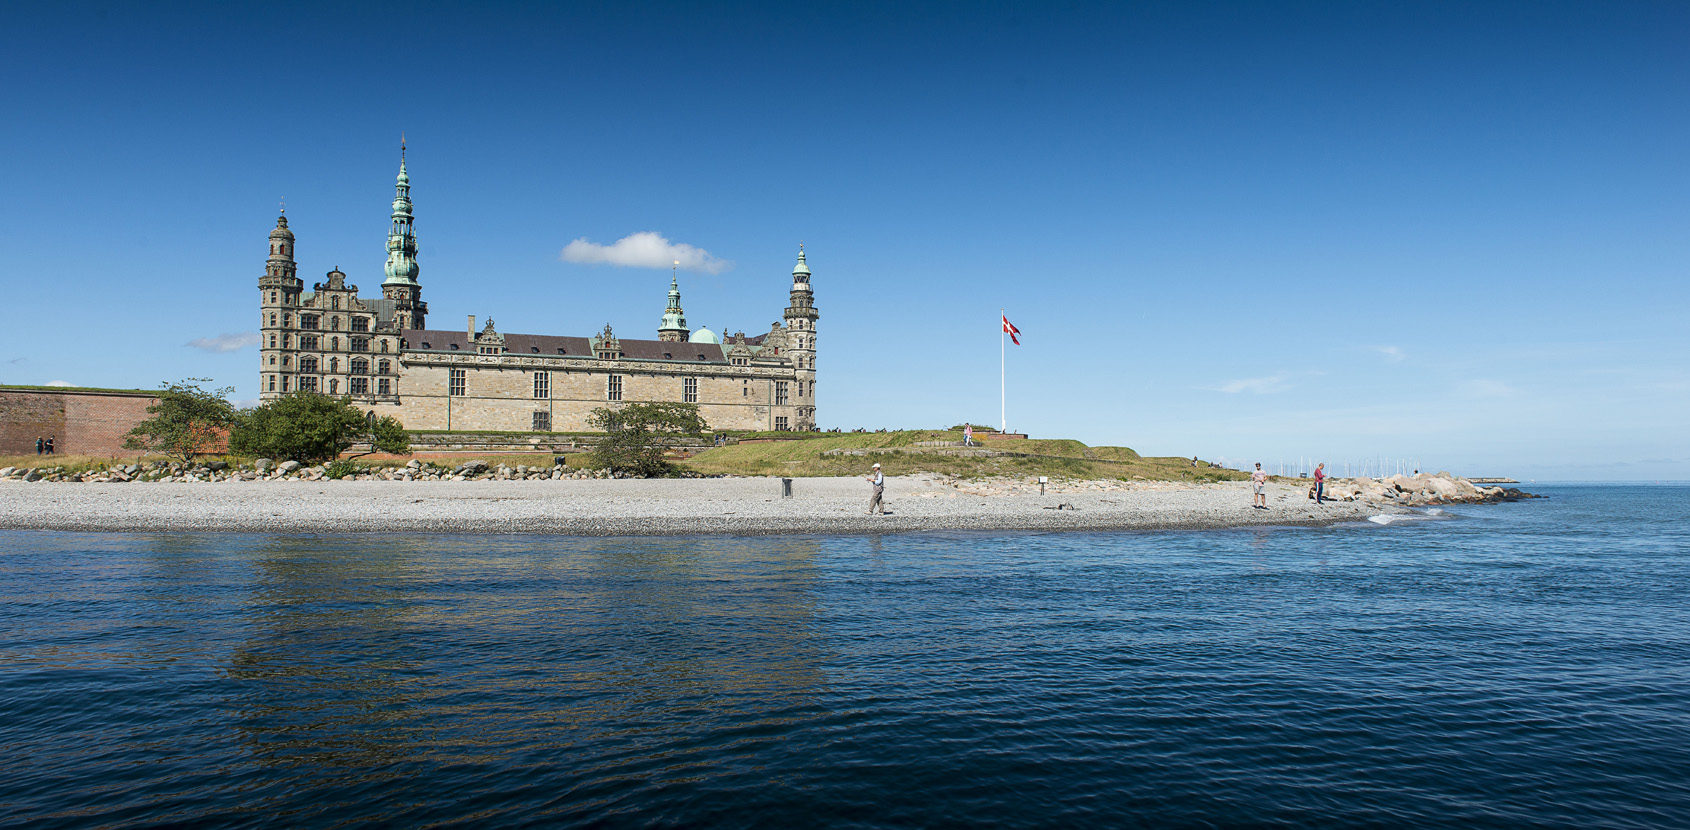 Kronborg Castle is a jewel in The King's chest. Photo: Thomas Rahbek